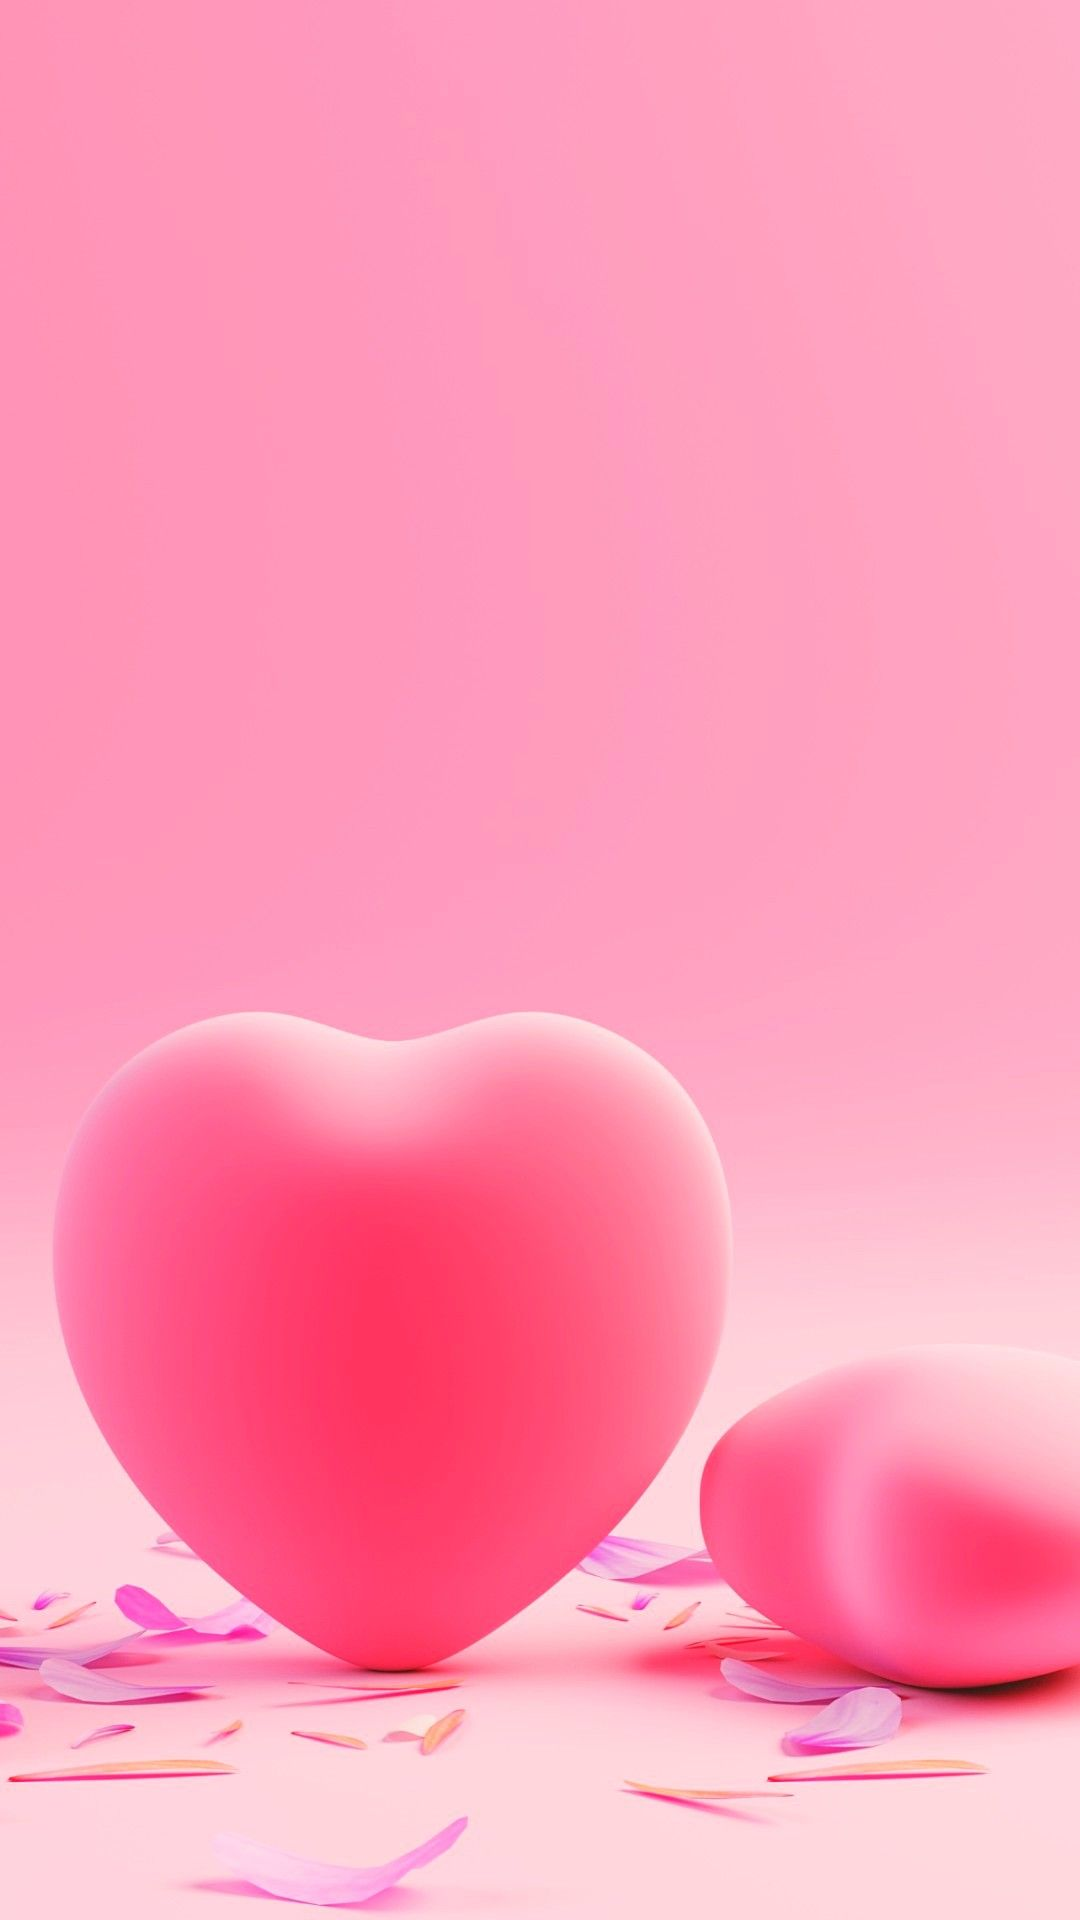 Pink Hearts Love Hd Wallpapers 1080x1920 Pink Wallpaper Iphone Aesthetic Iphone Wallpaper Pink Heart Iphone heart wallpaper hd 1080p free